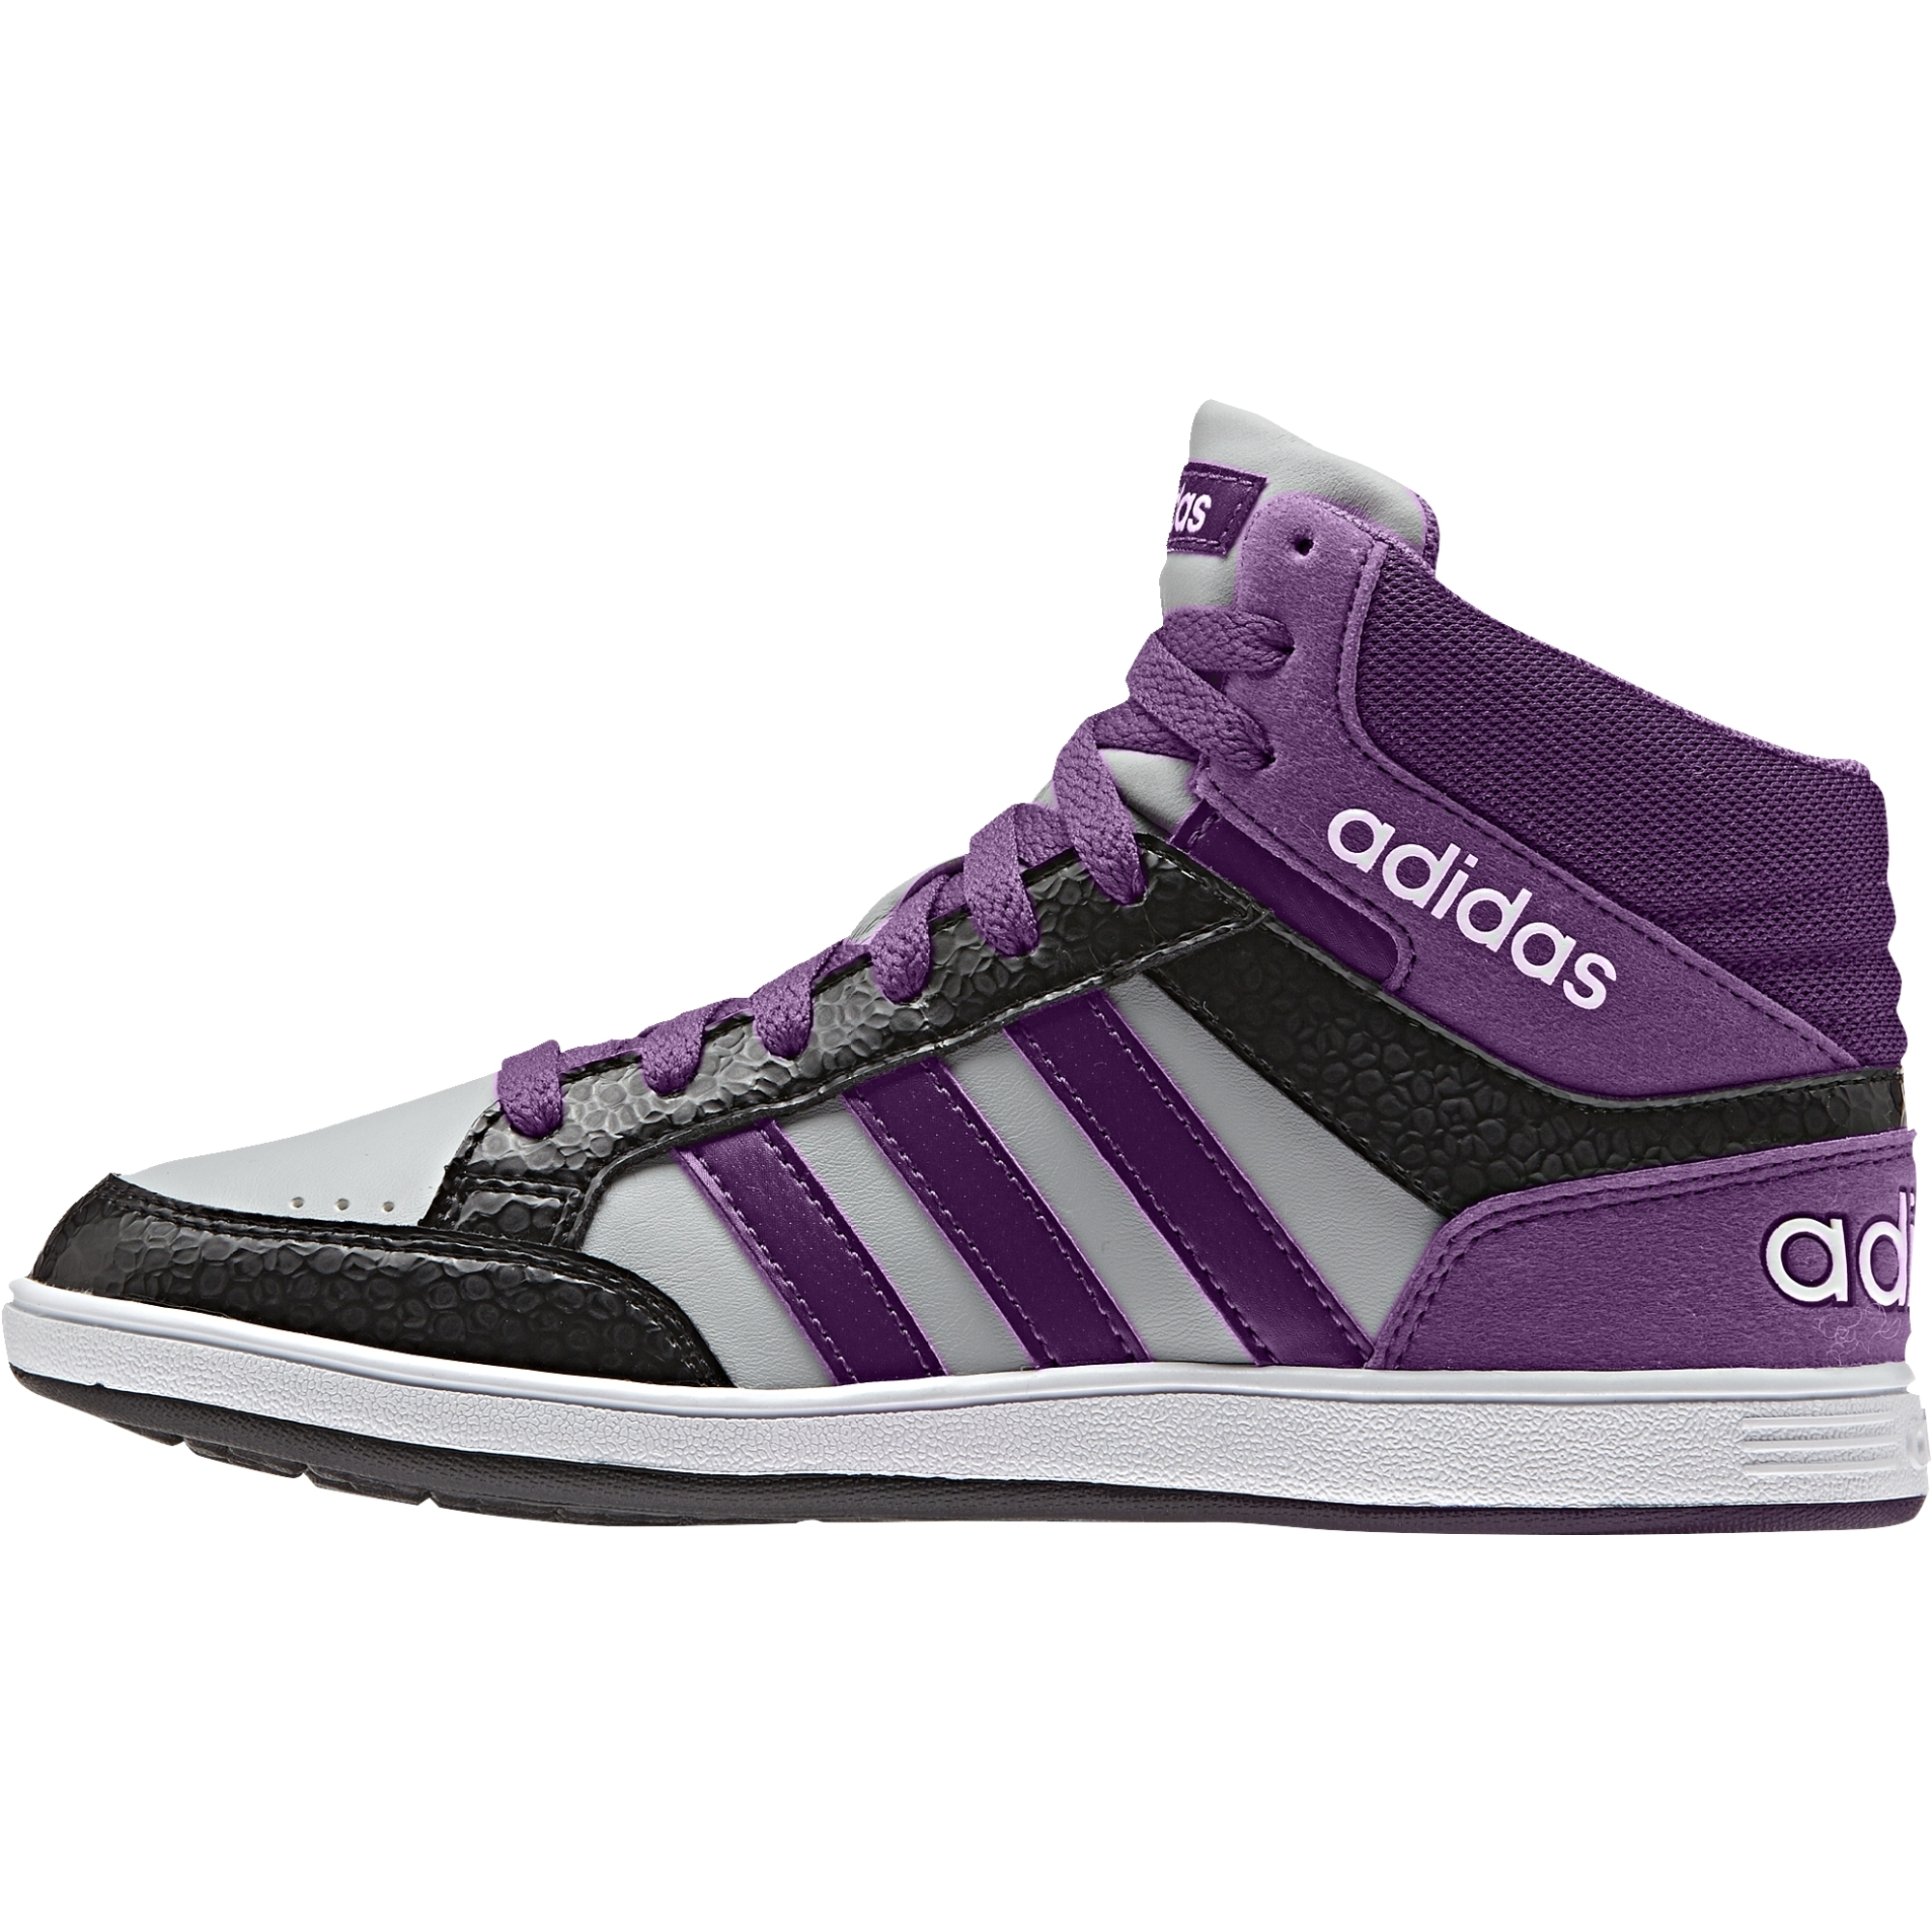 buty adidas Hoops Mid K AW5130 timsport.pl b66c28c3a0d